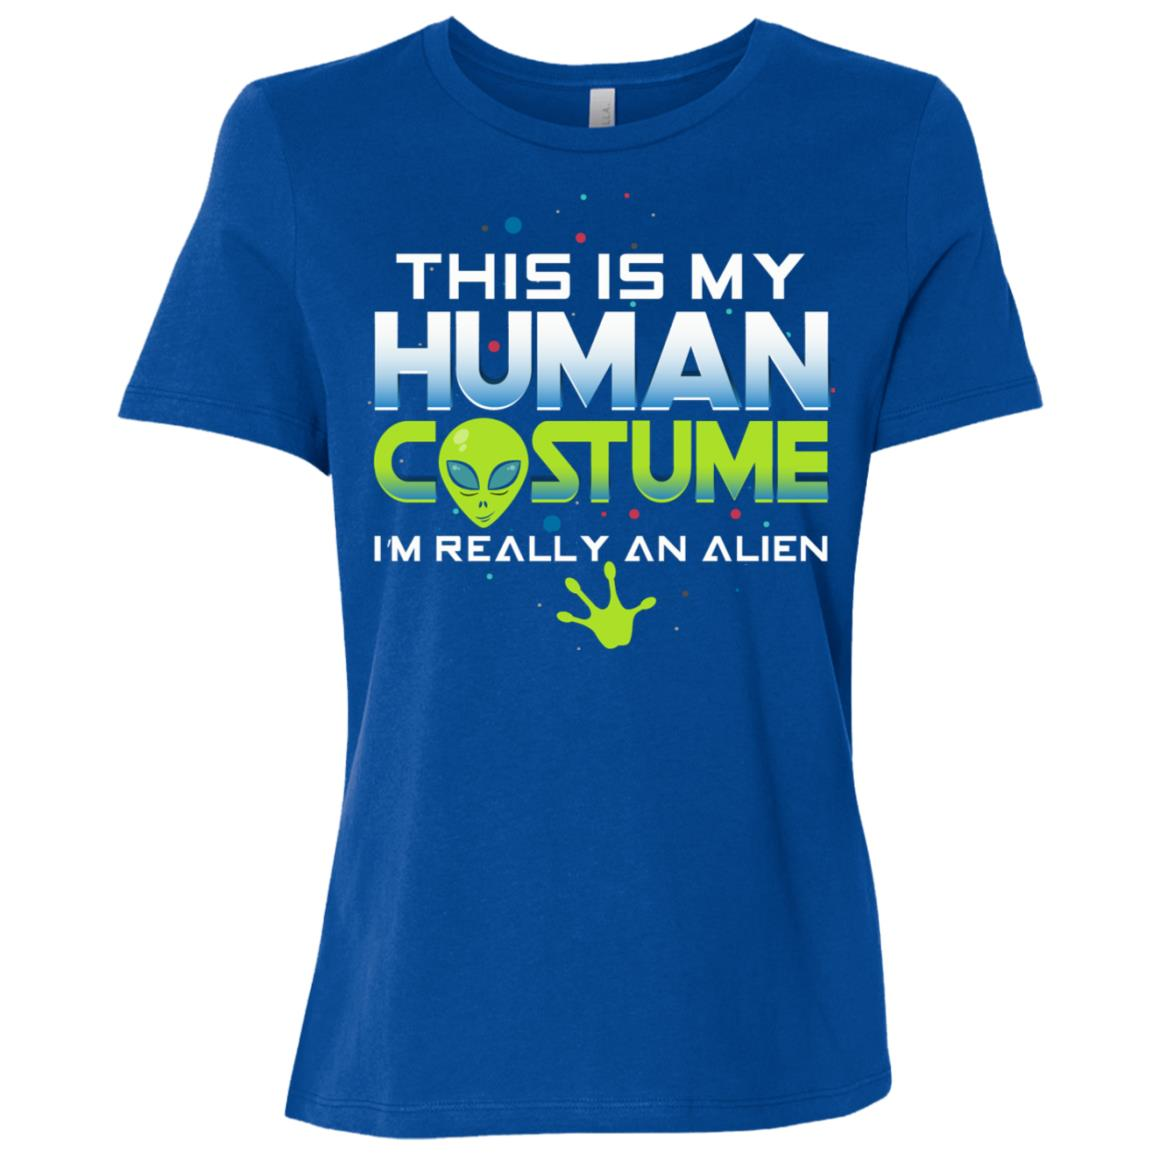 This Is My Human Costume I'm Really An Alien Tee Women Short Sleeve T-Shirt